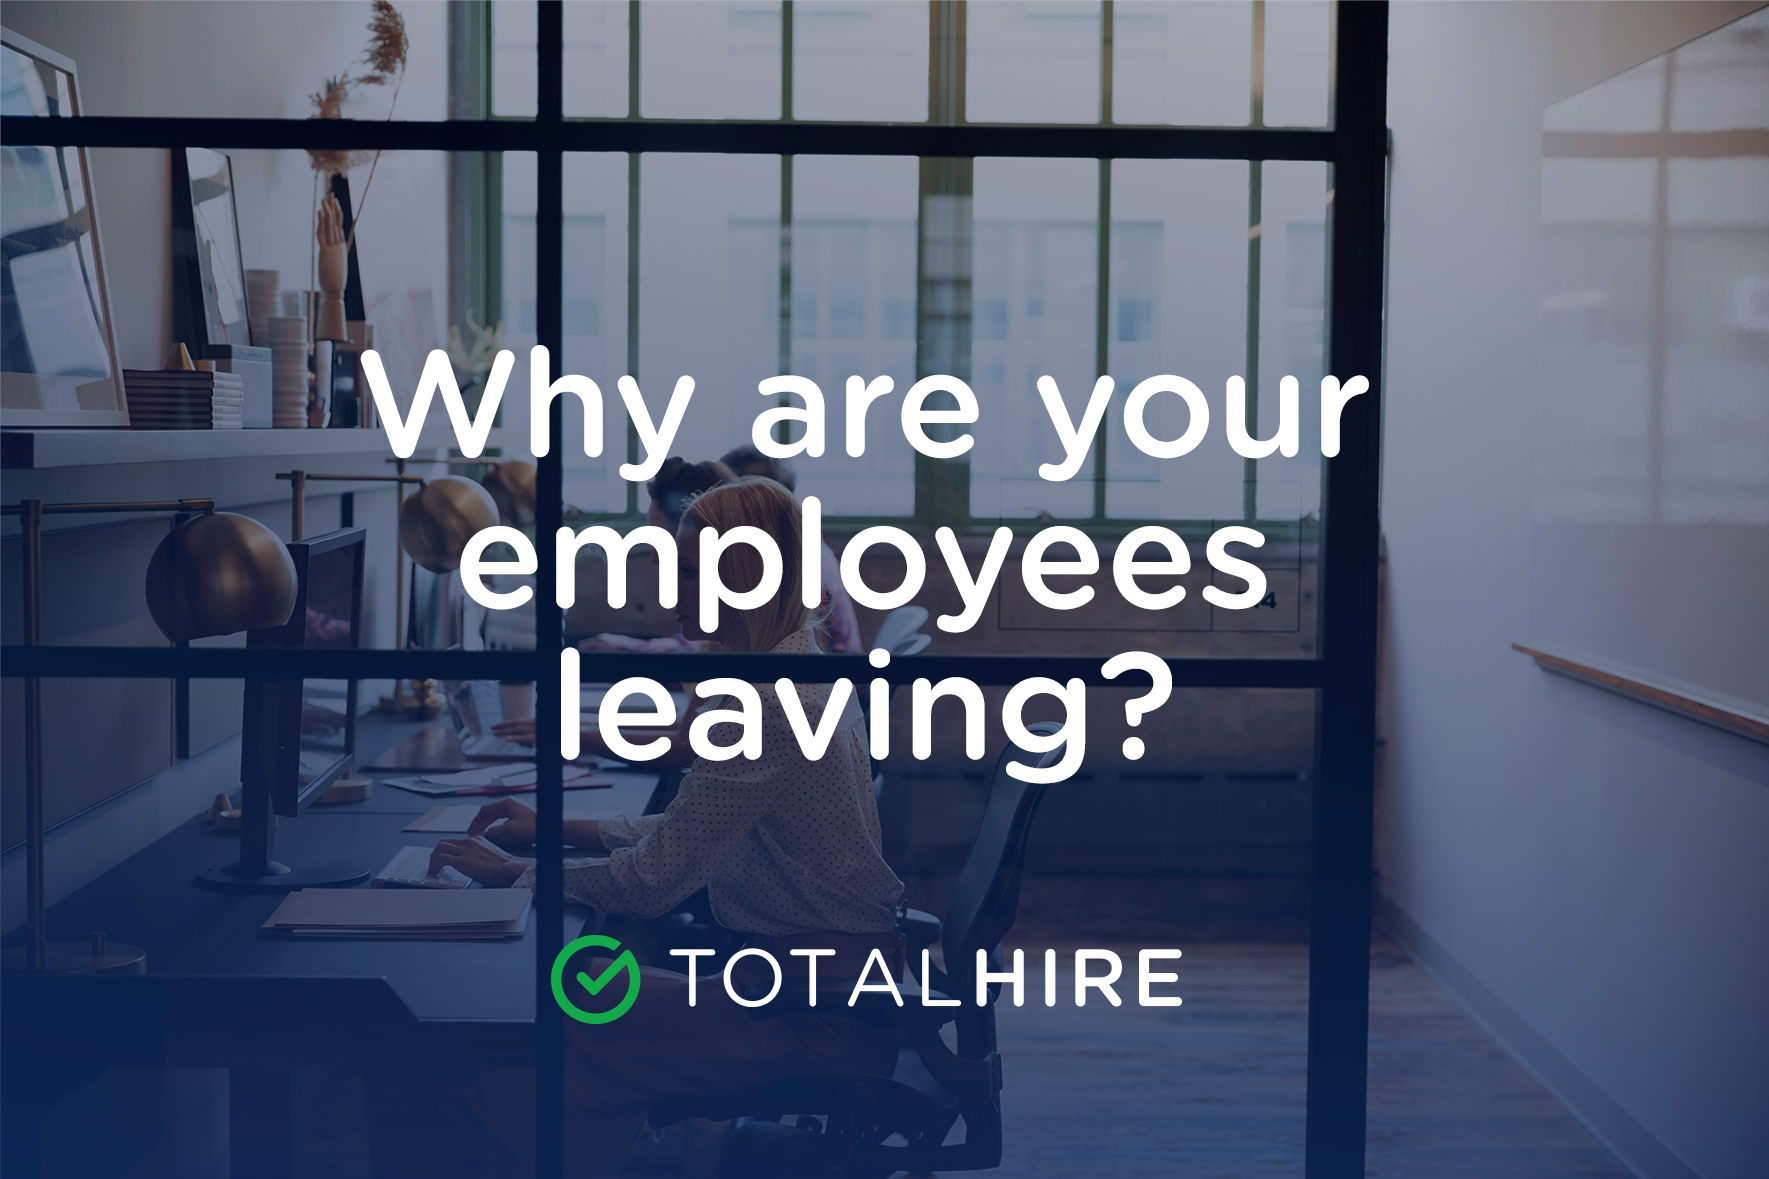 Here's Why Your Employees are Leaving (And What You Can Do About It)